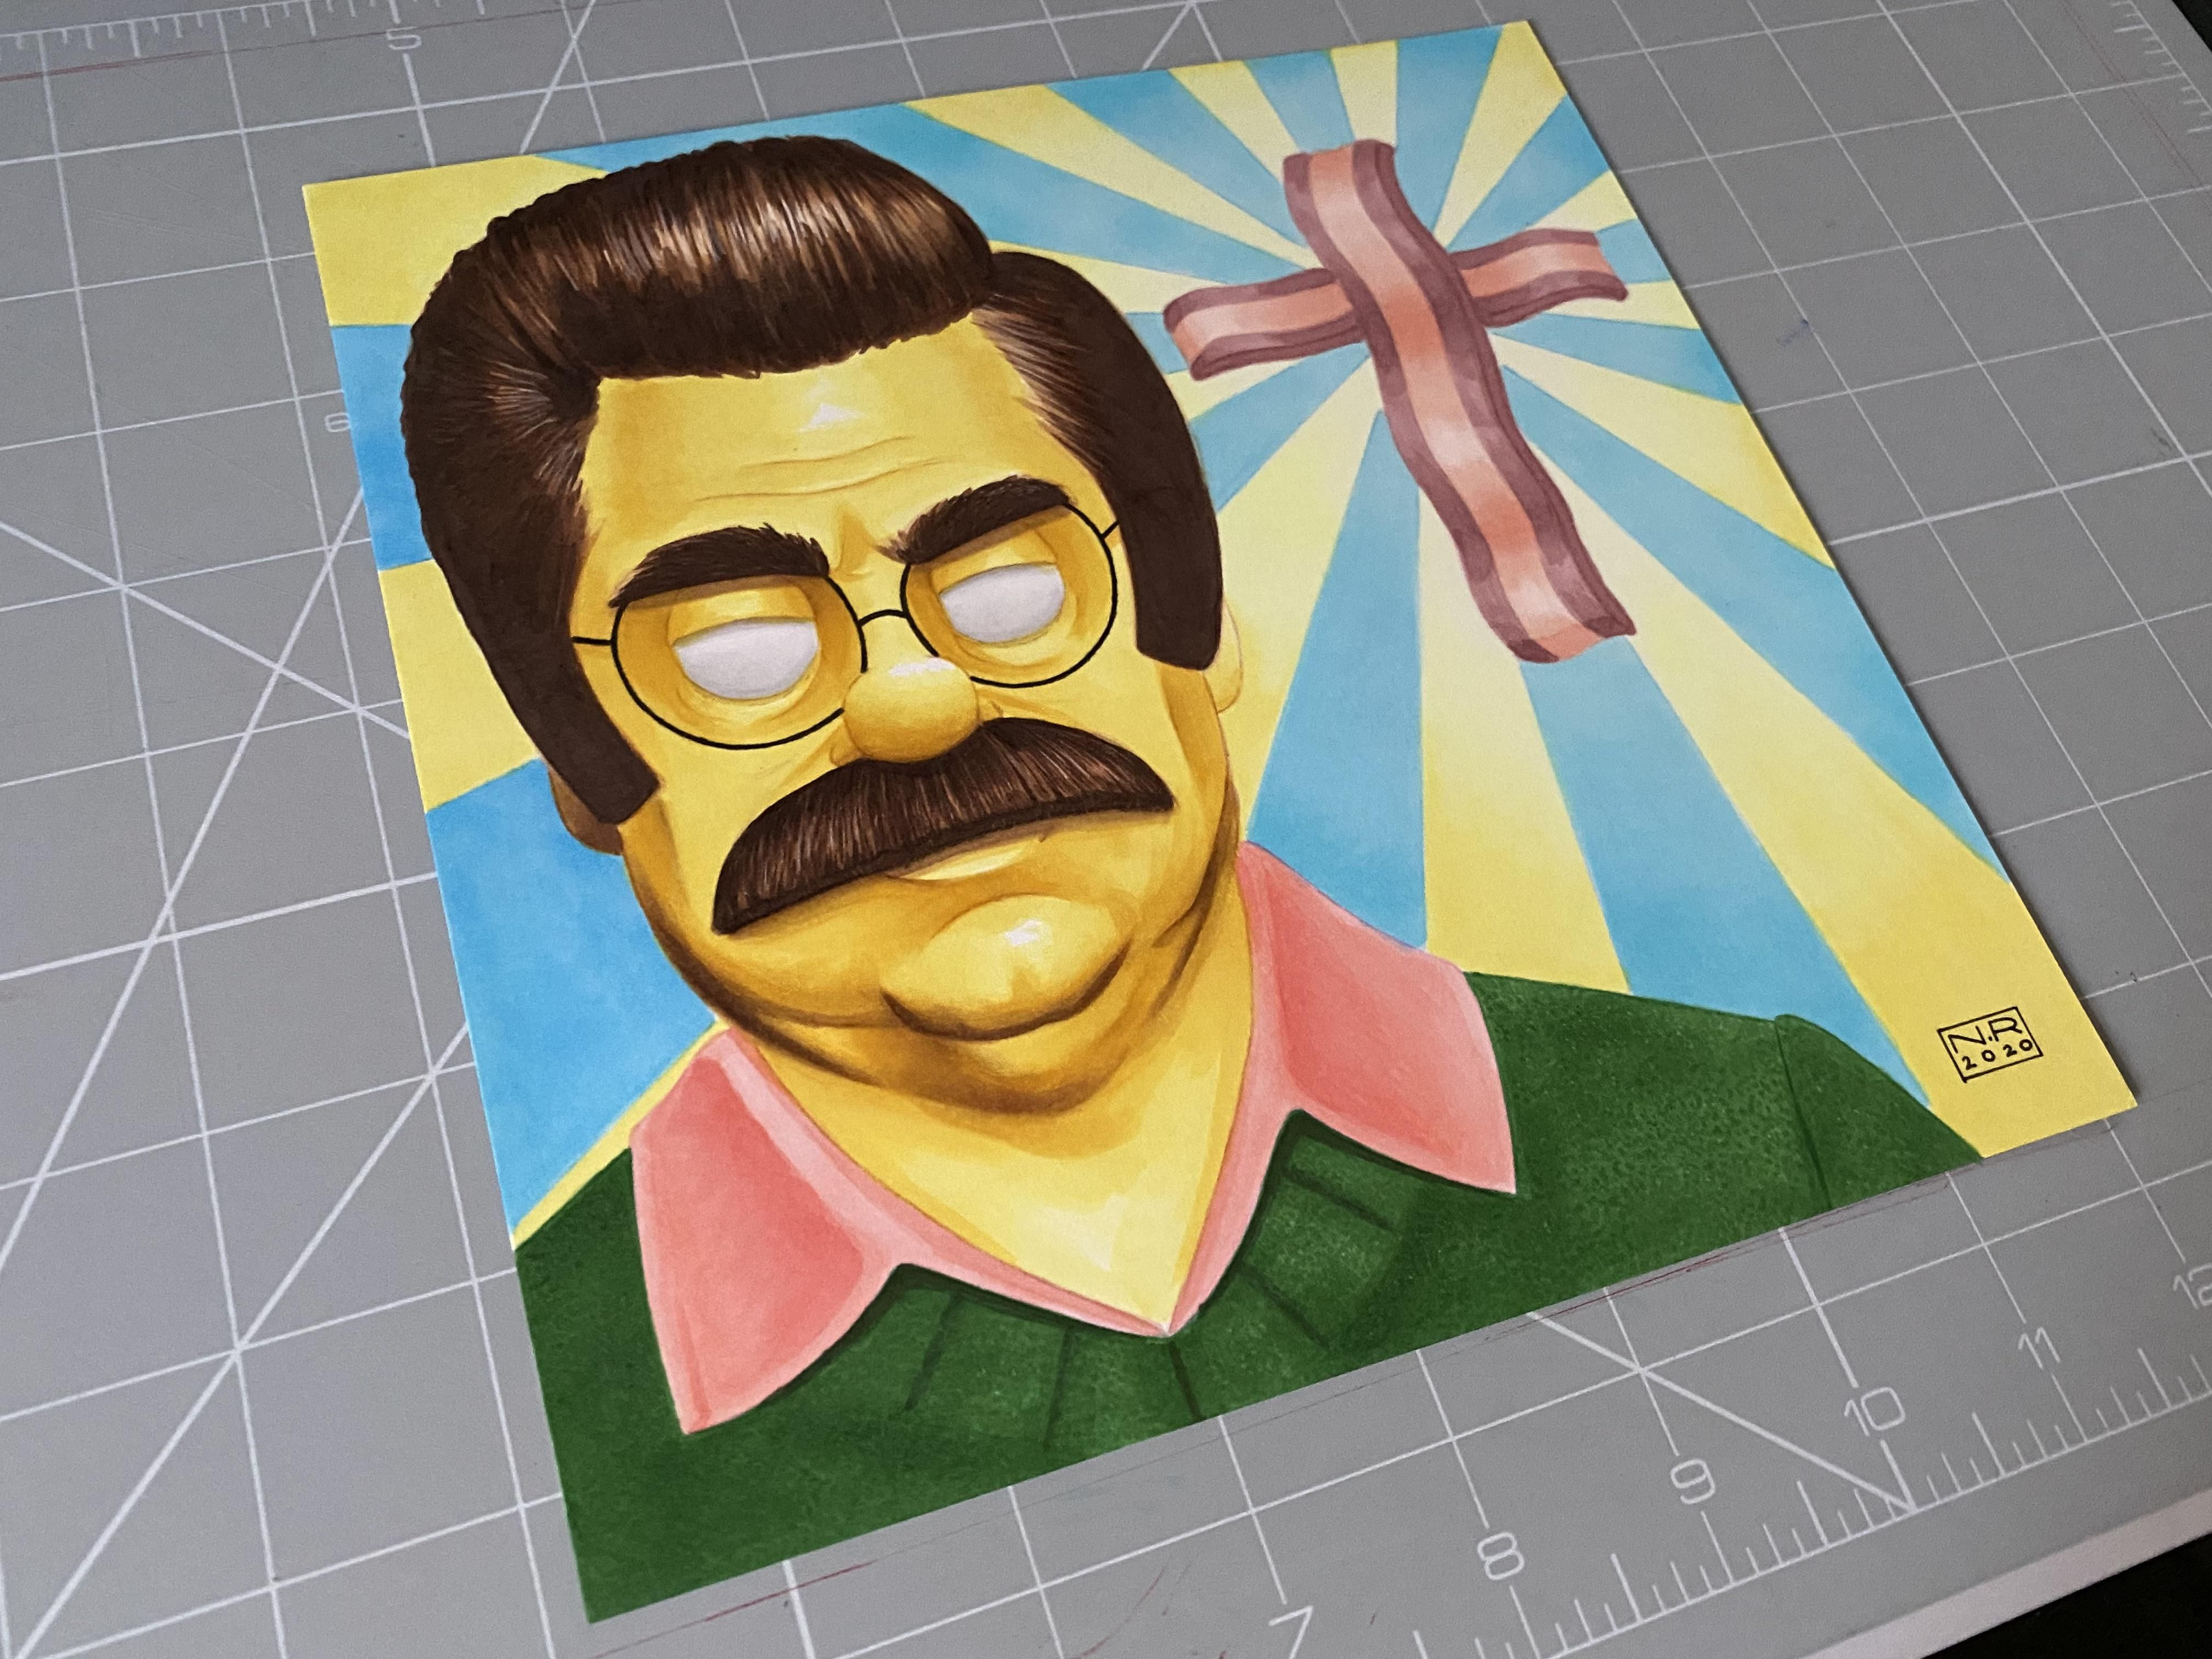 My latest marker piece. Not sure if his name should be Ron Flanders or Ned Swanson. Either way, dude loves bacon.